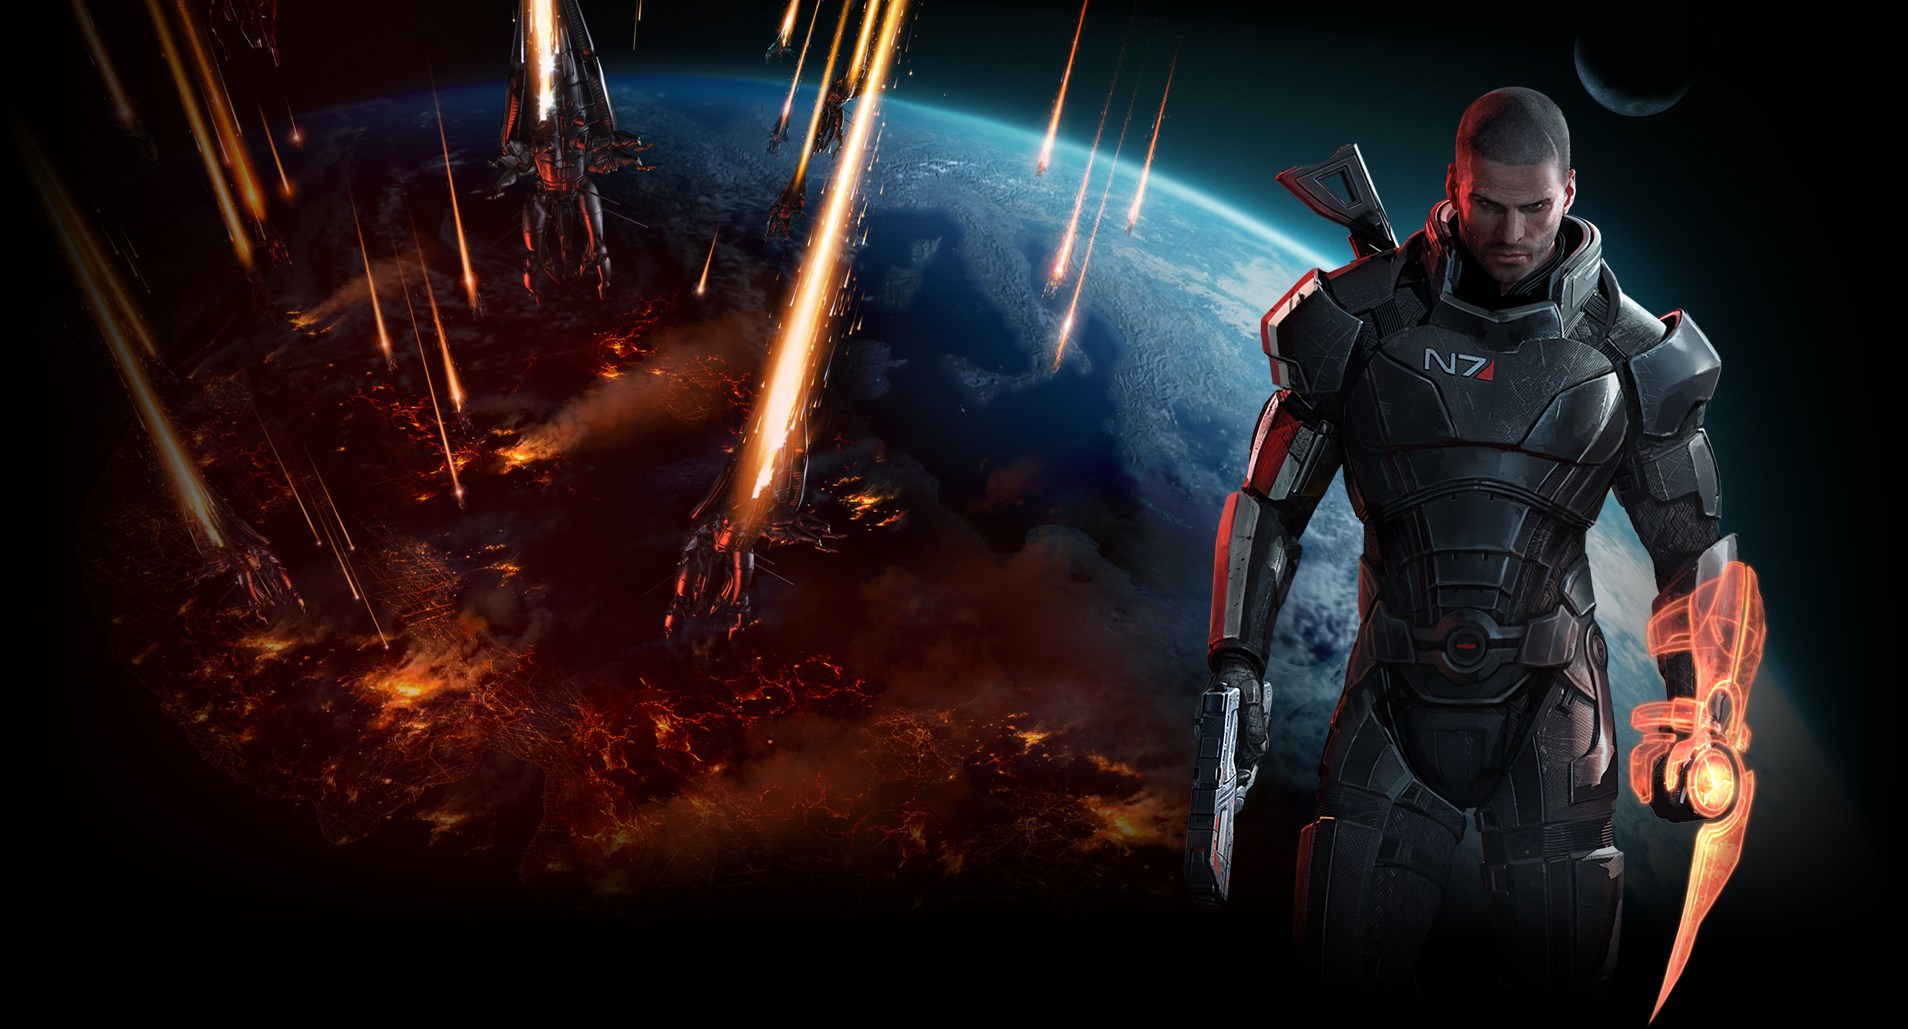 Mass Effect 3 Wallpapers Video Game Hq Mass Effect 3 Pictures